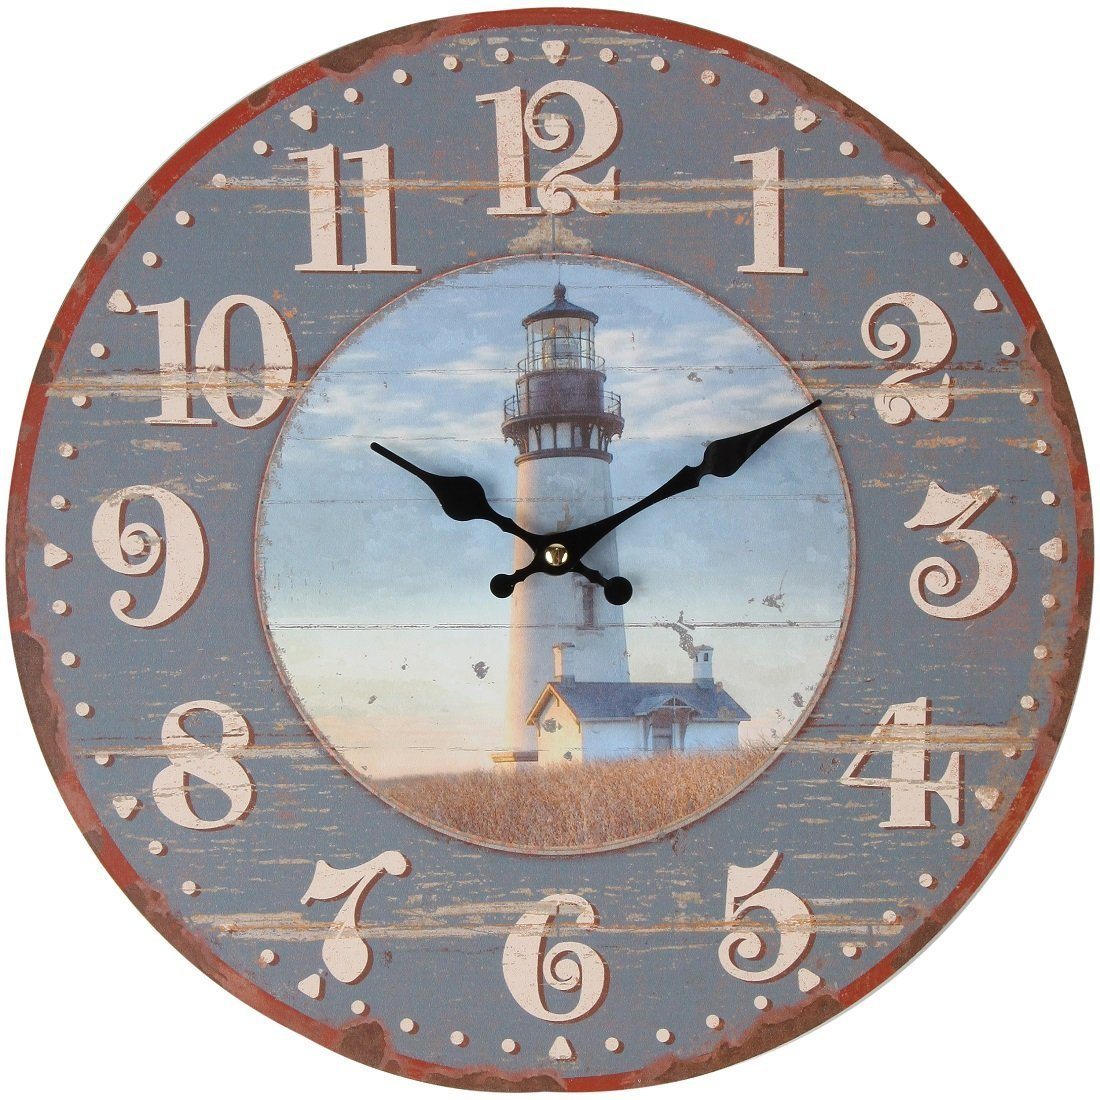 Lily's Home Rustic Wood-Style Country Lighthouse Wall Clock, Fits Nautical or Country Décor, Battery-Powered with Quartz Movement, Ideal Gift for Lighthouse Fans (13